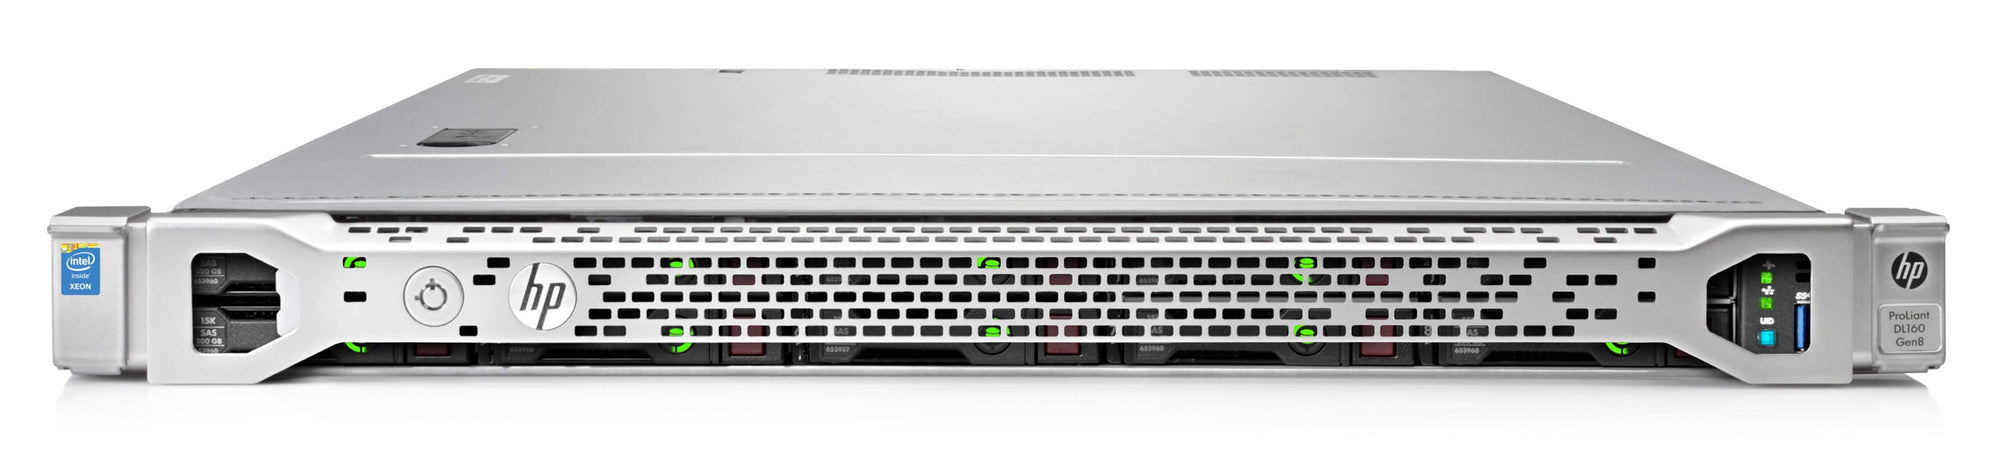 HPE ProLiant DL160 Gen8 CTO Server